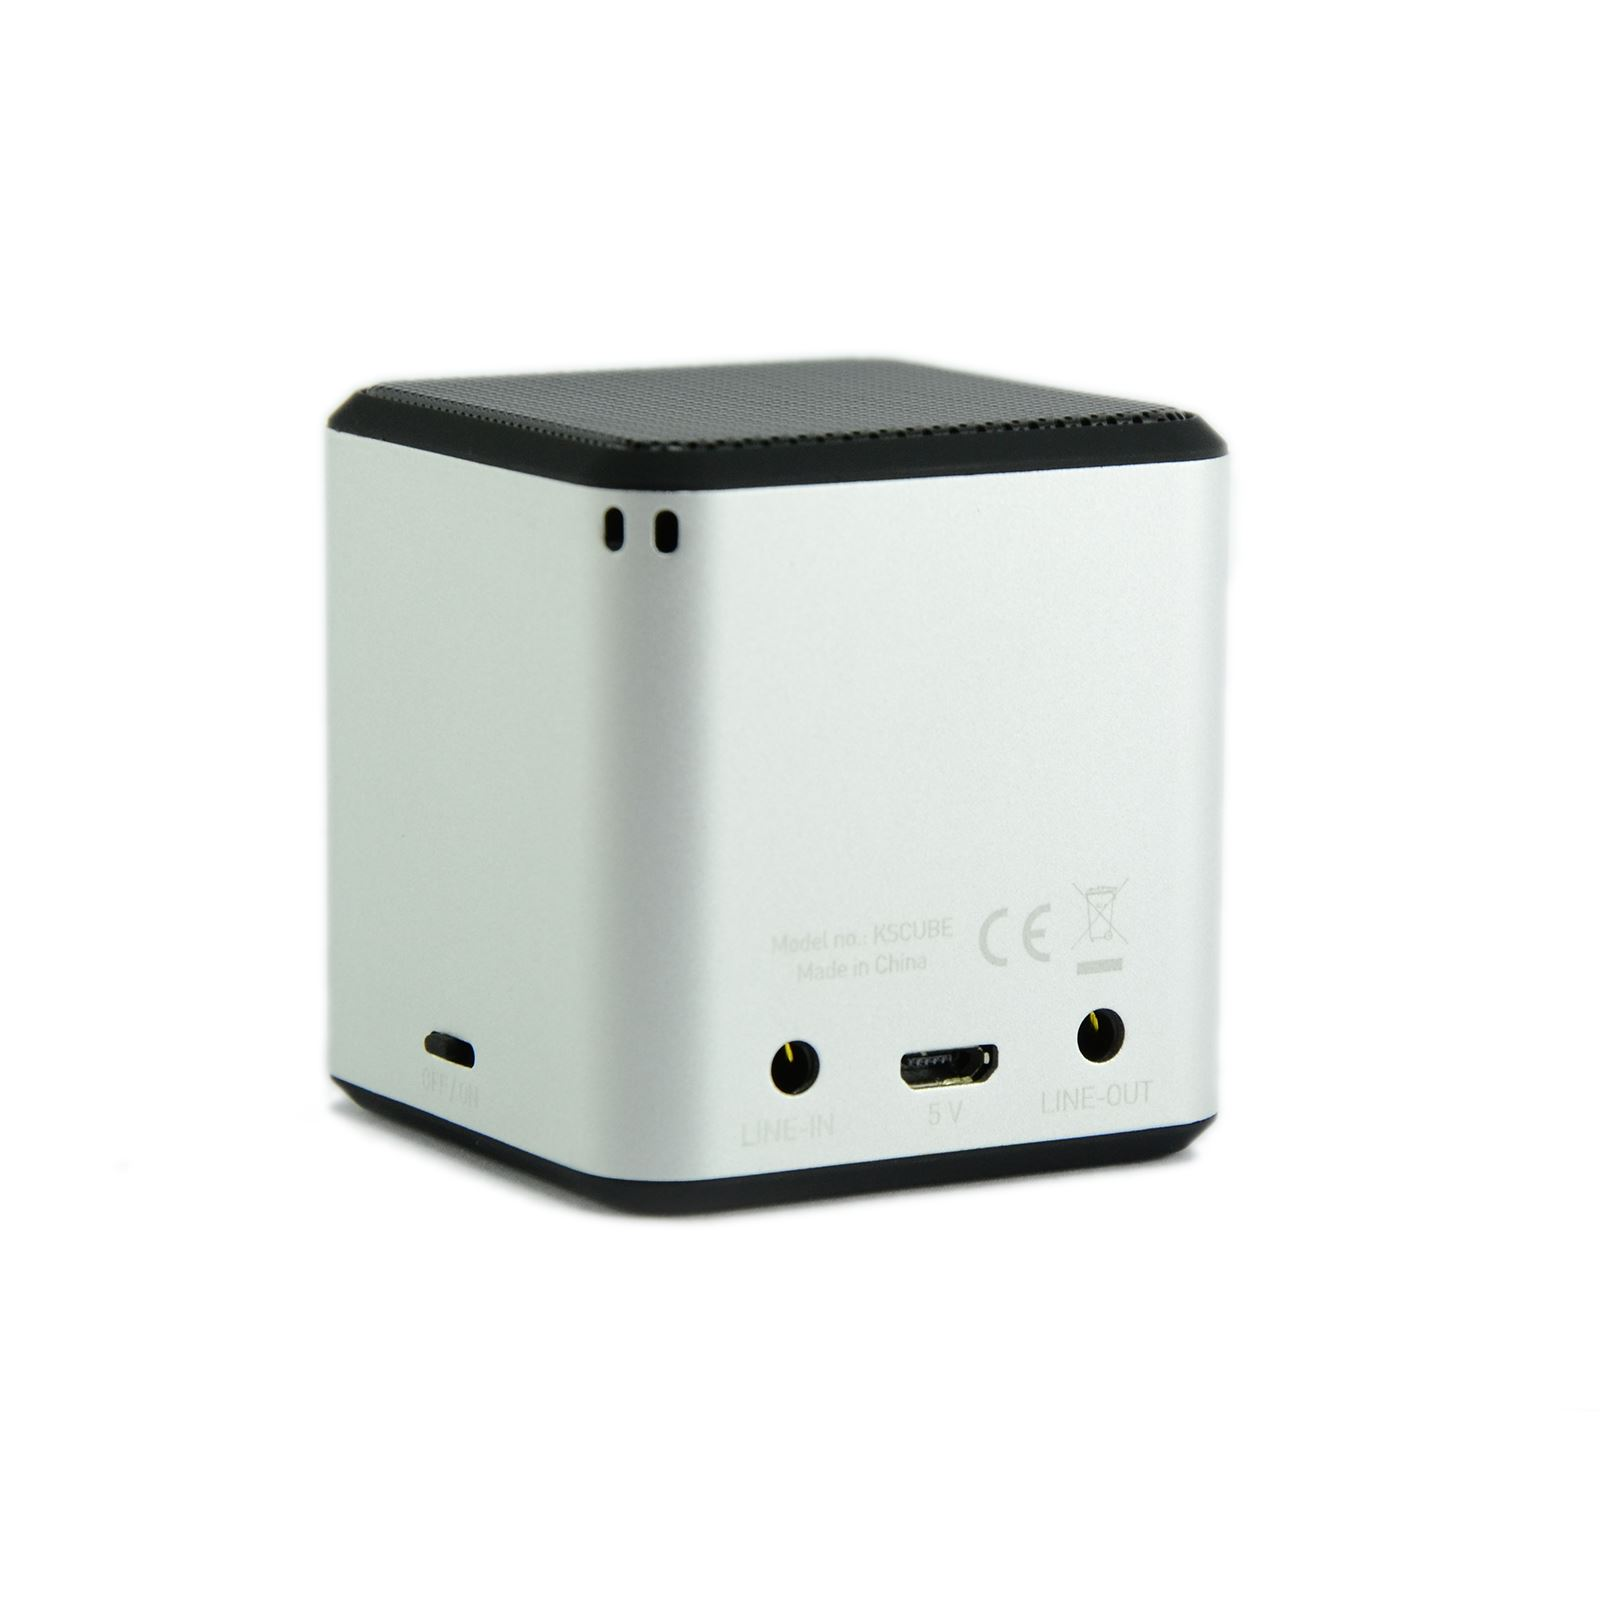 KitSound CUBE Wired Mini Speaker Rechargeable Portable Pocket ...